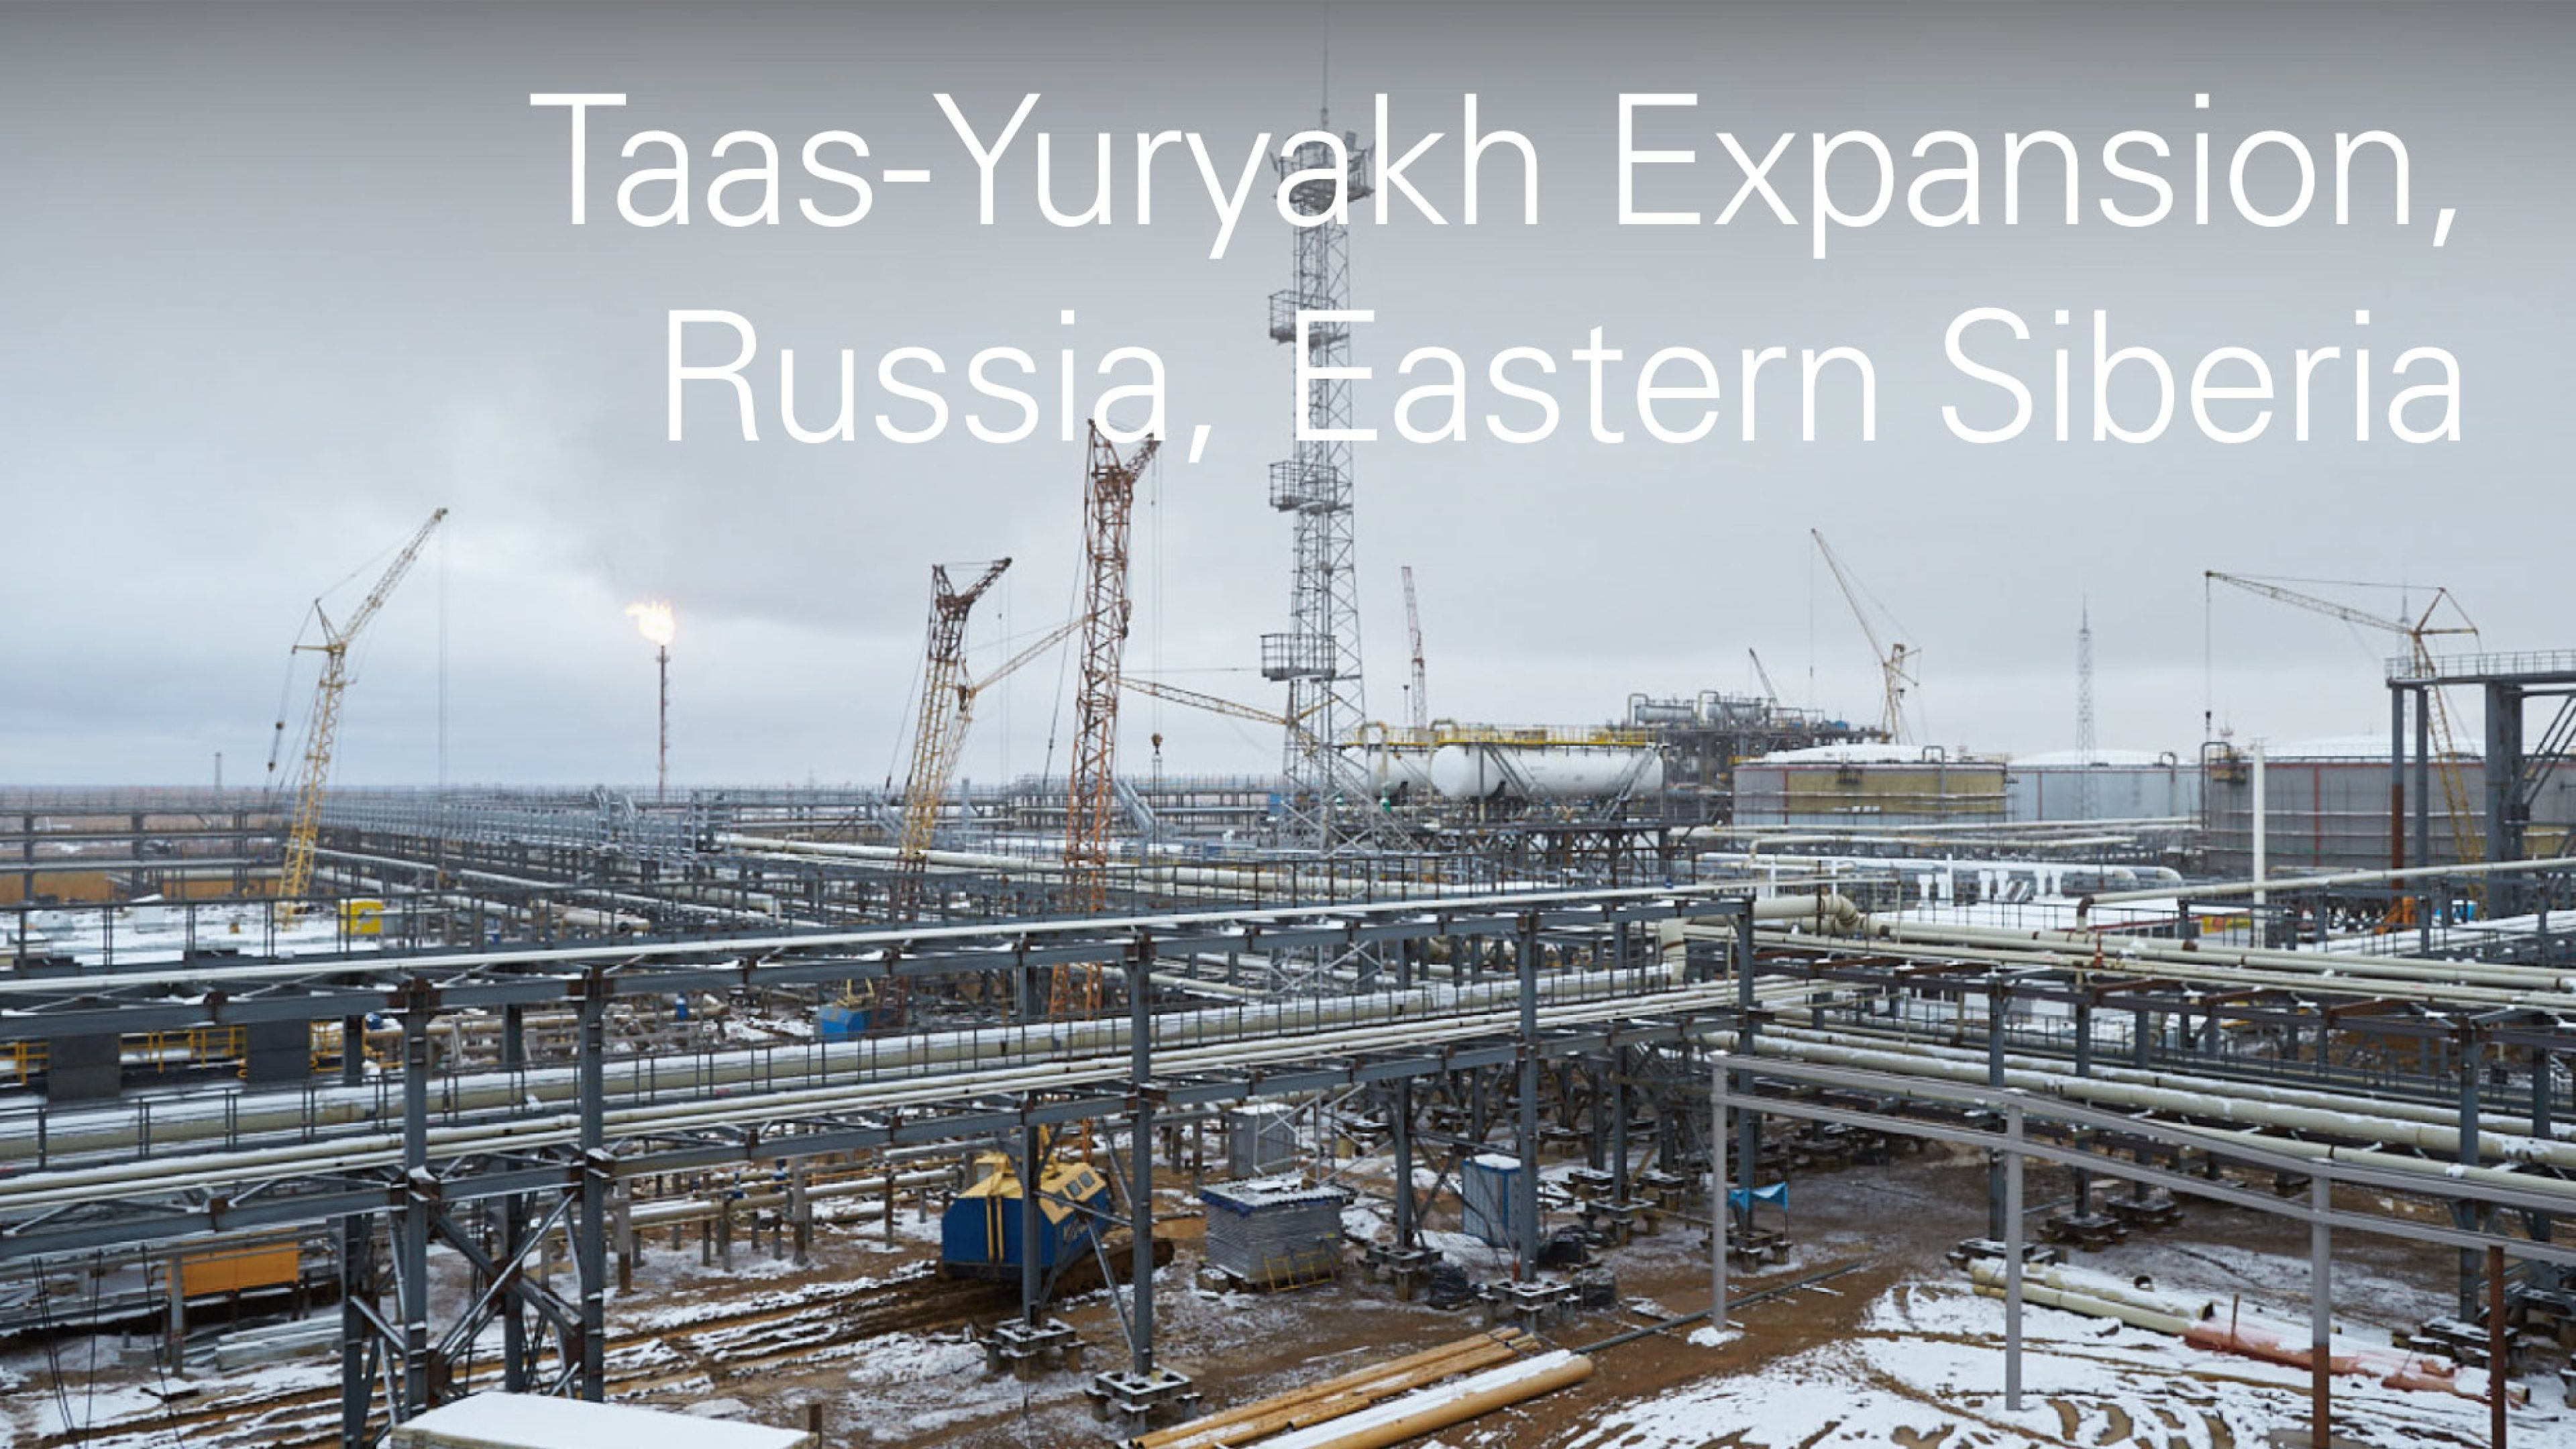 Taas-Yuryakh Expansion, Russia